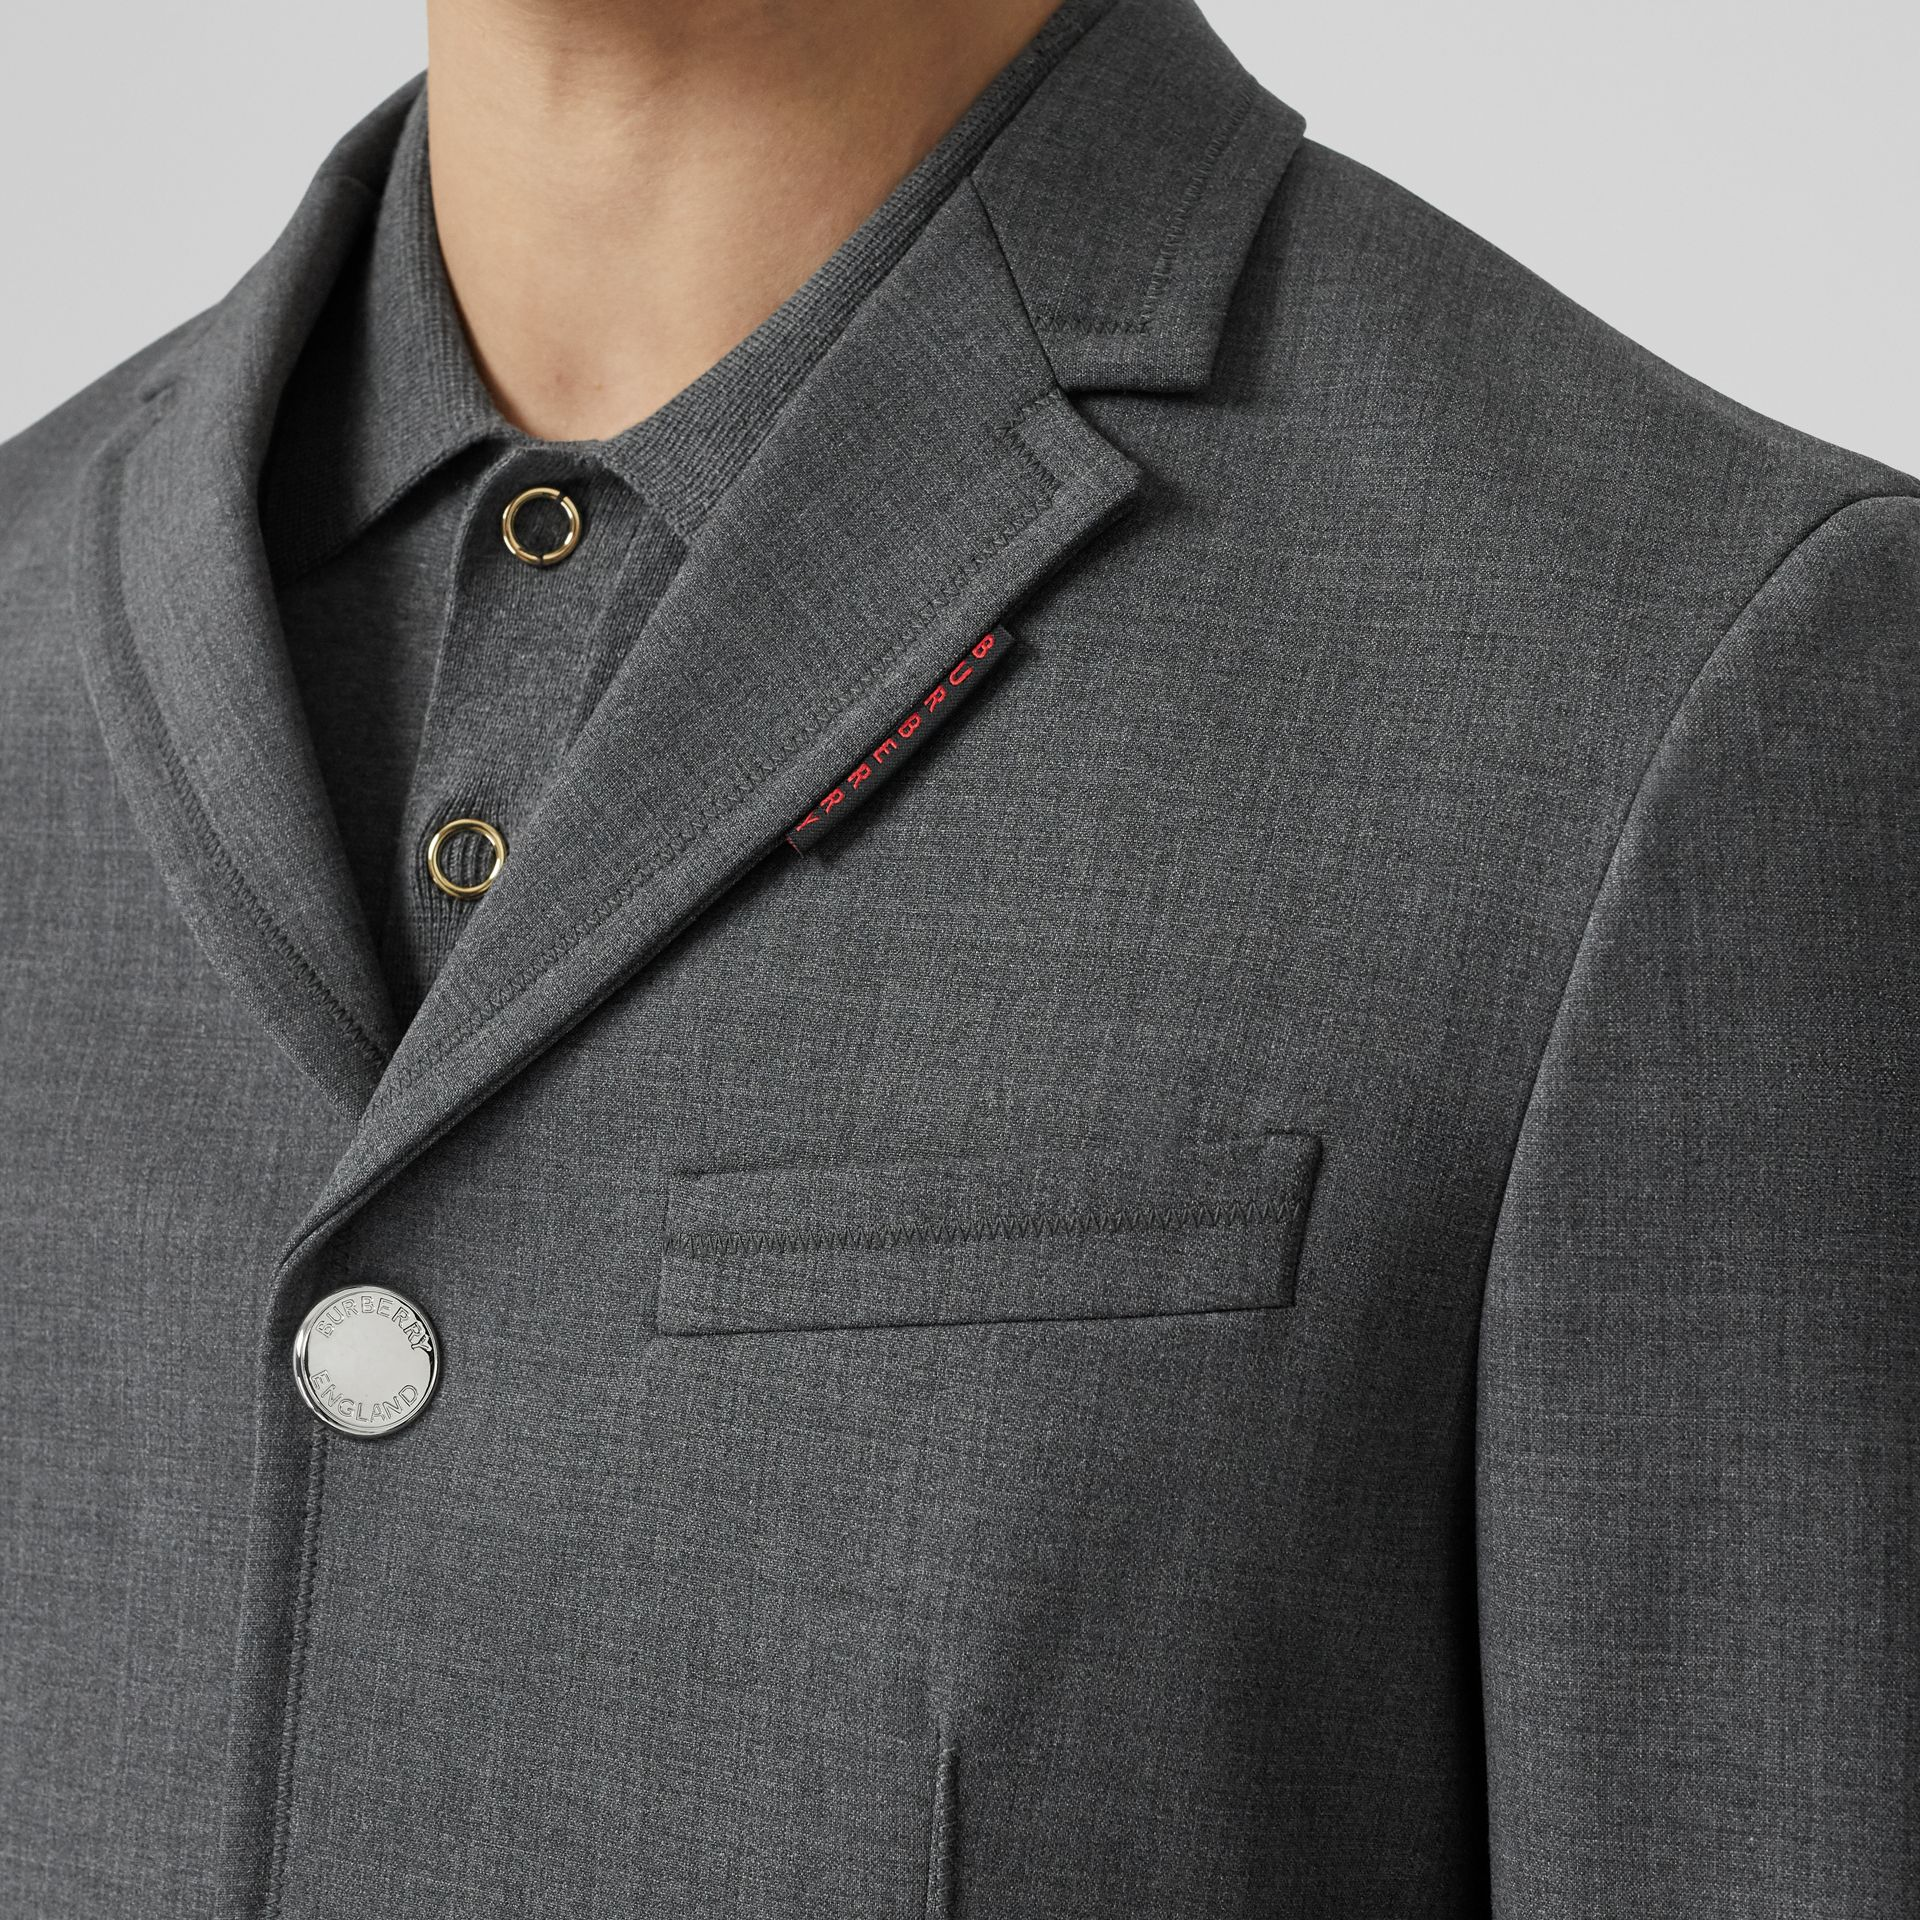 Stripe Detail Stretch Wool Neoprene Tailored Jacket in Dark Grey Melange - Men | Burberry - gallery image 1